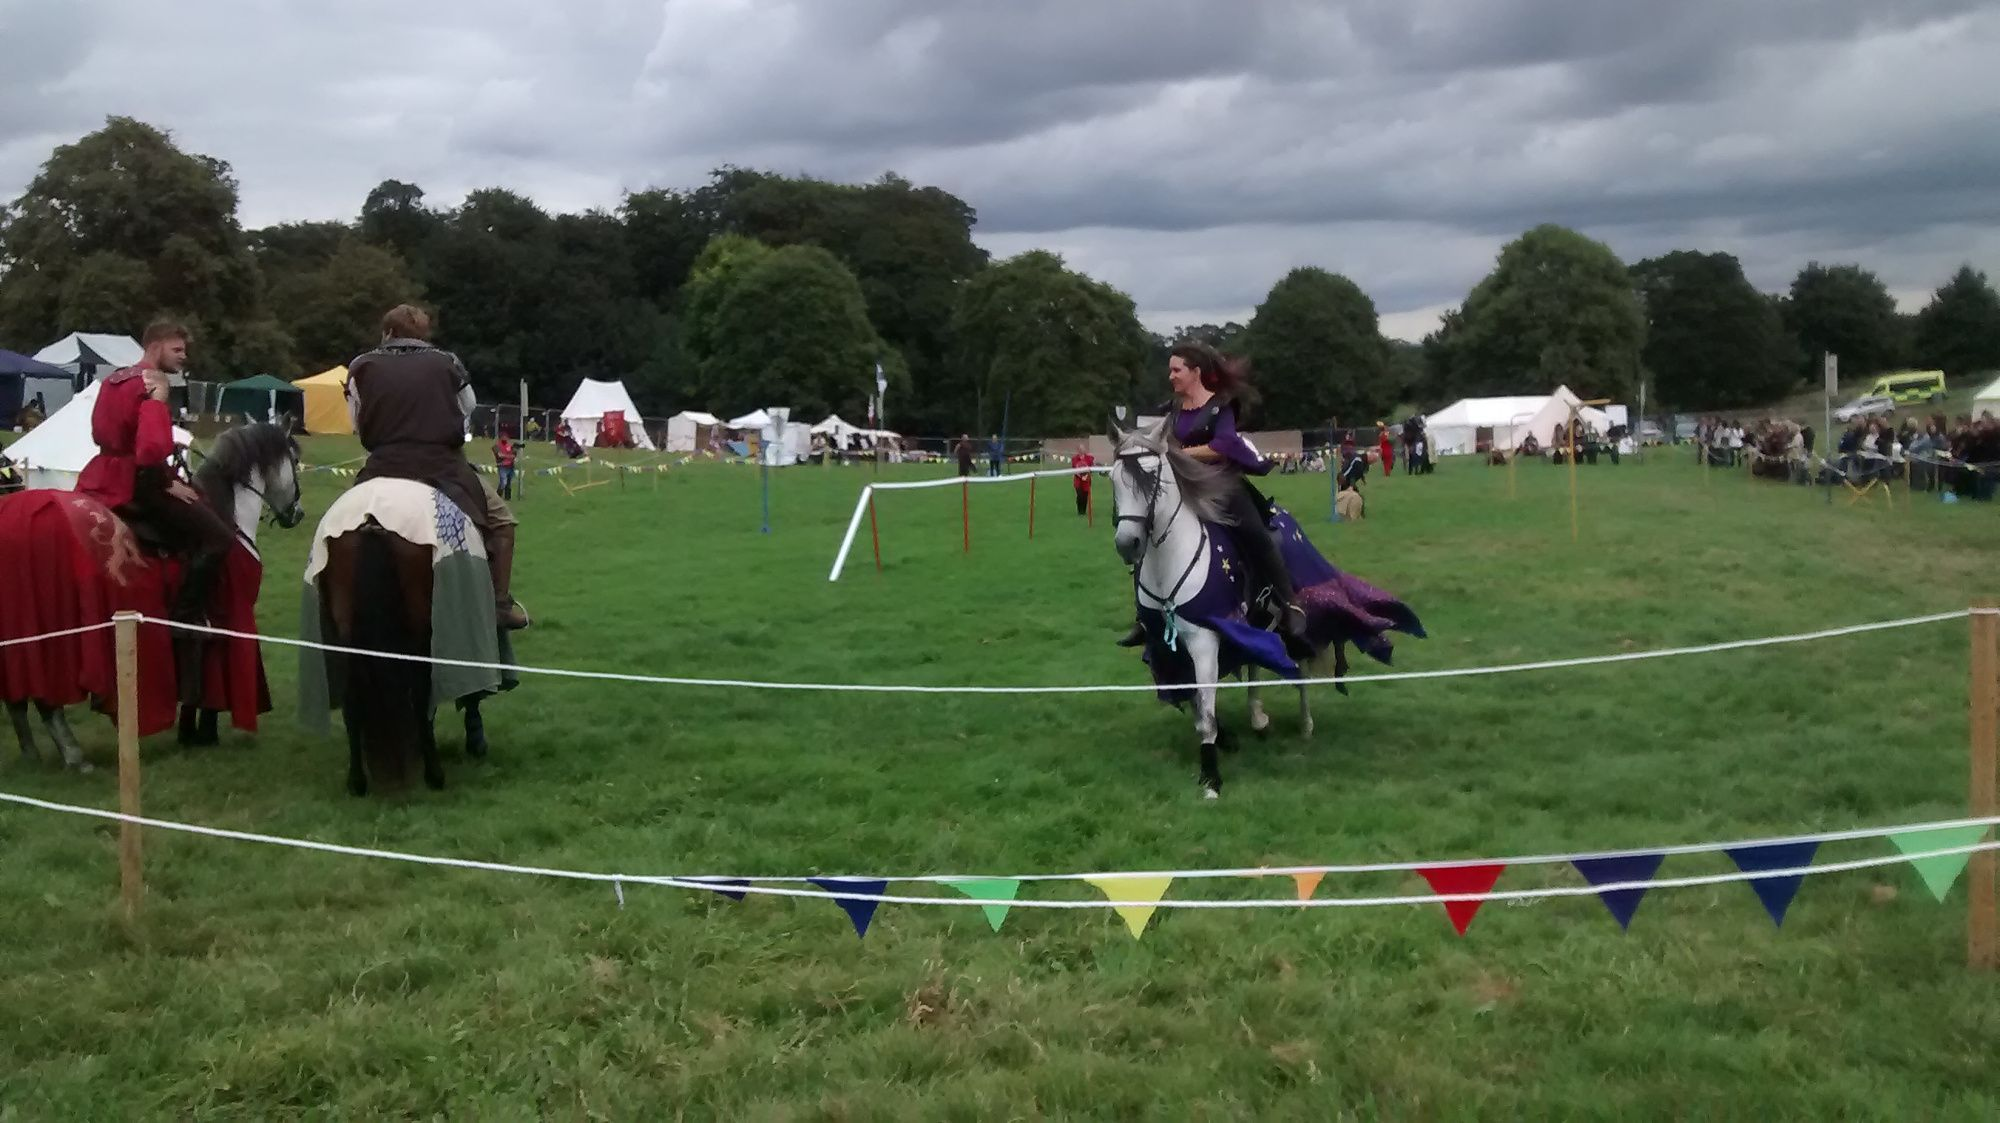 The joust in action